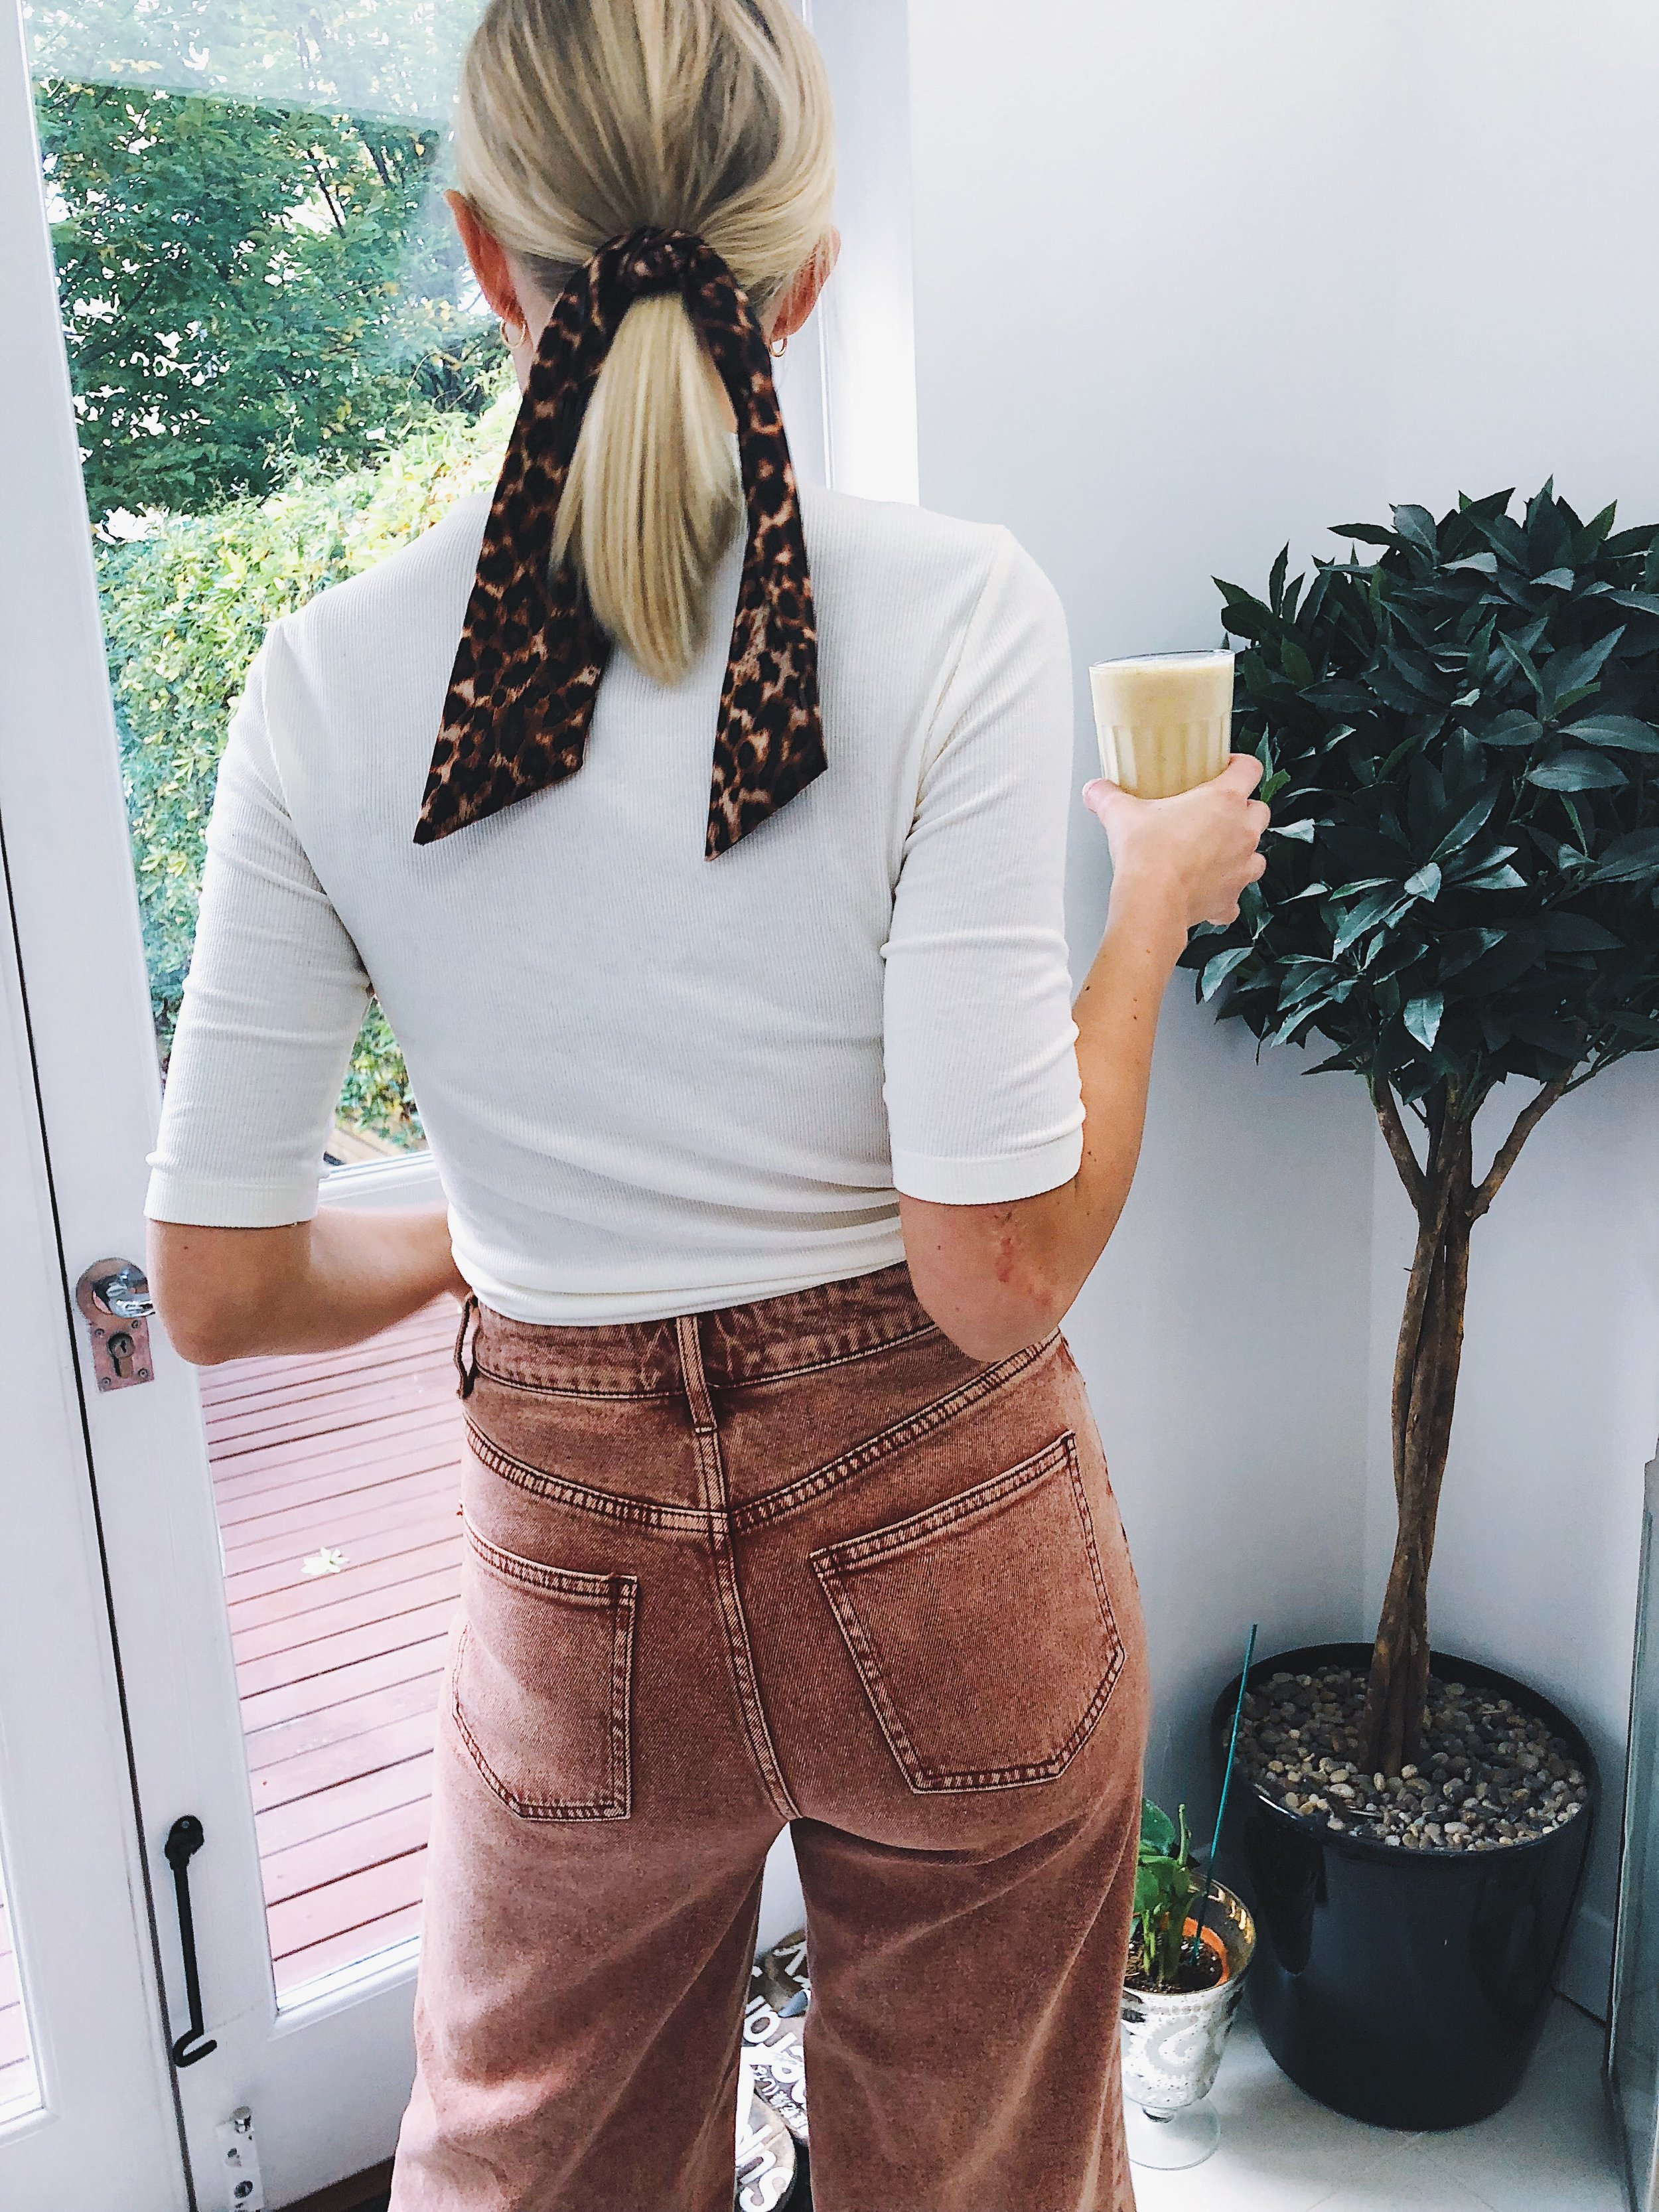 THE LOW PONY - This is one of the more standard ways of using a scarf as a hair accessory.Tie it around your low ponytail and let the ends hang down.